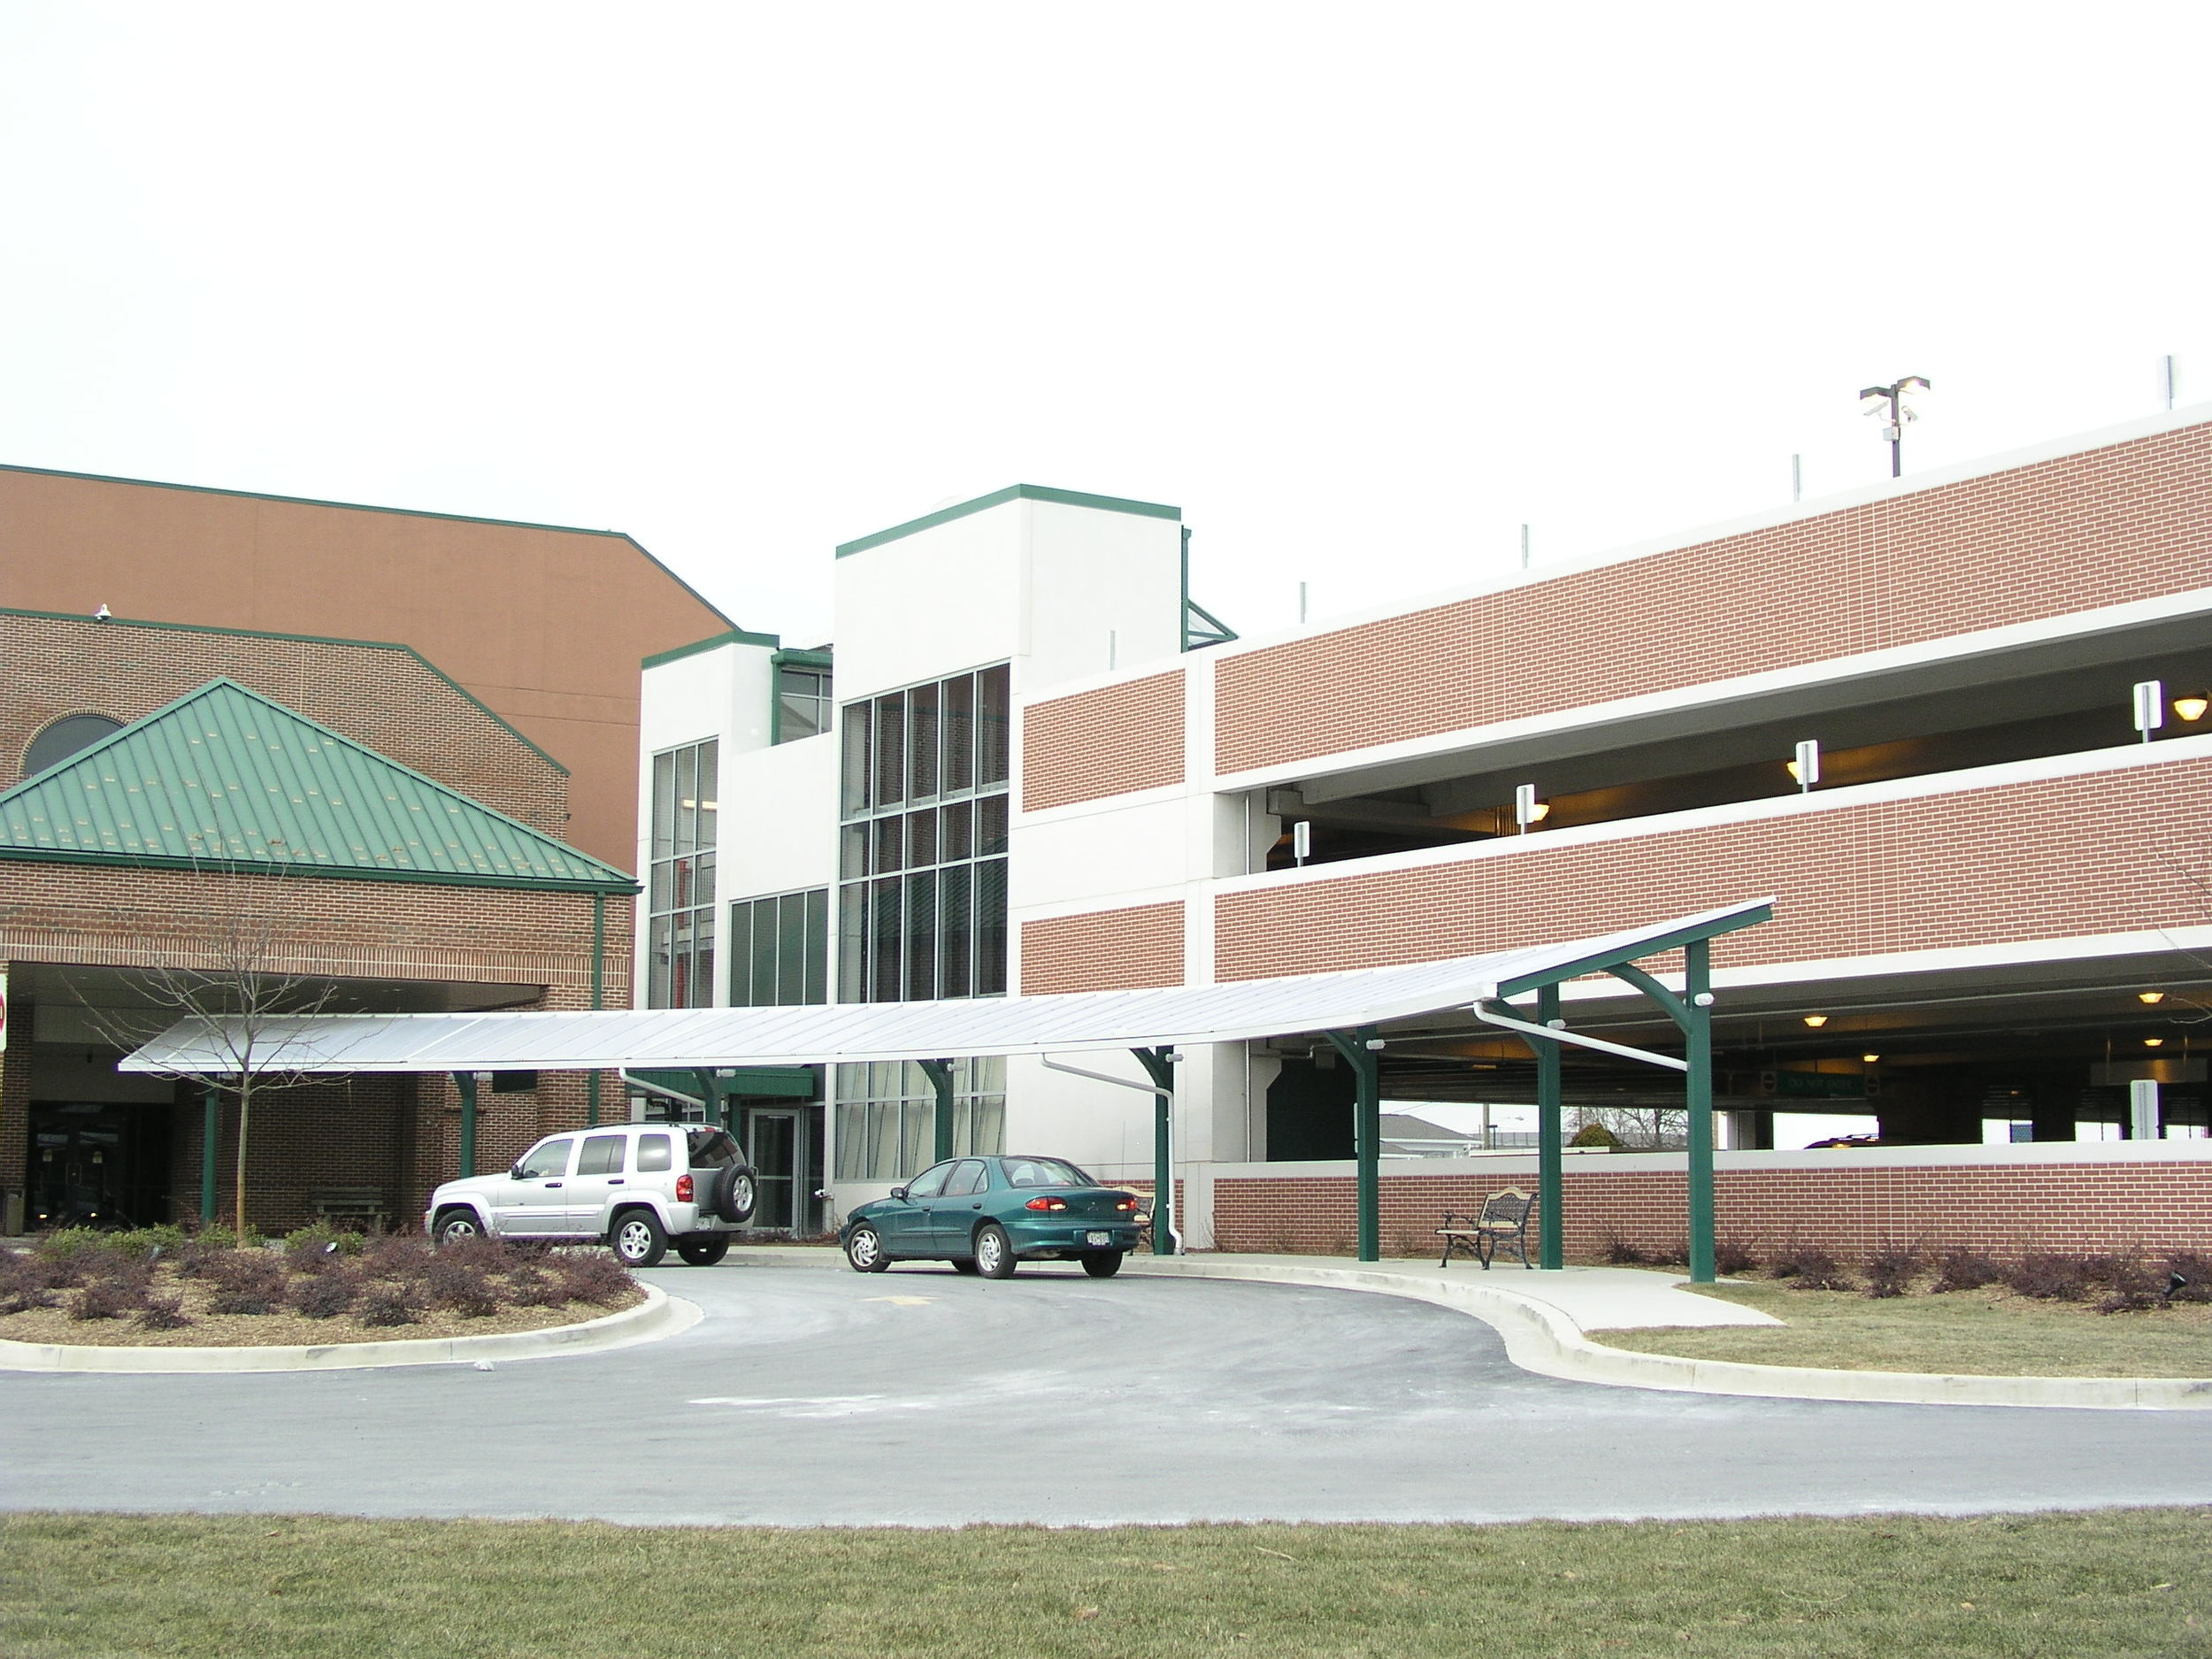 Union Hospital Parking Garage